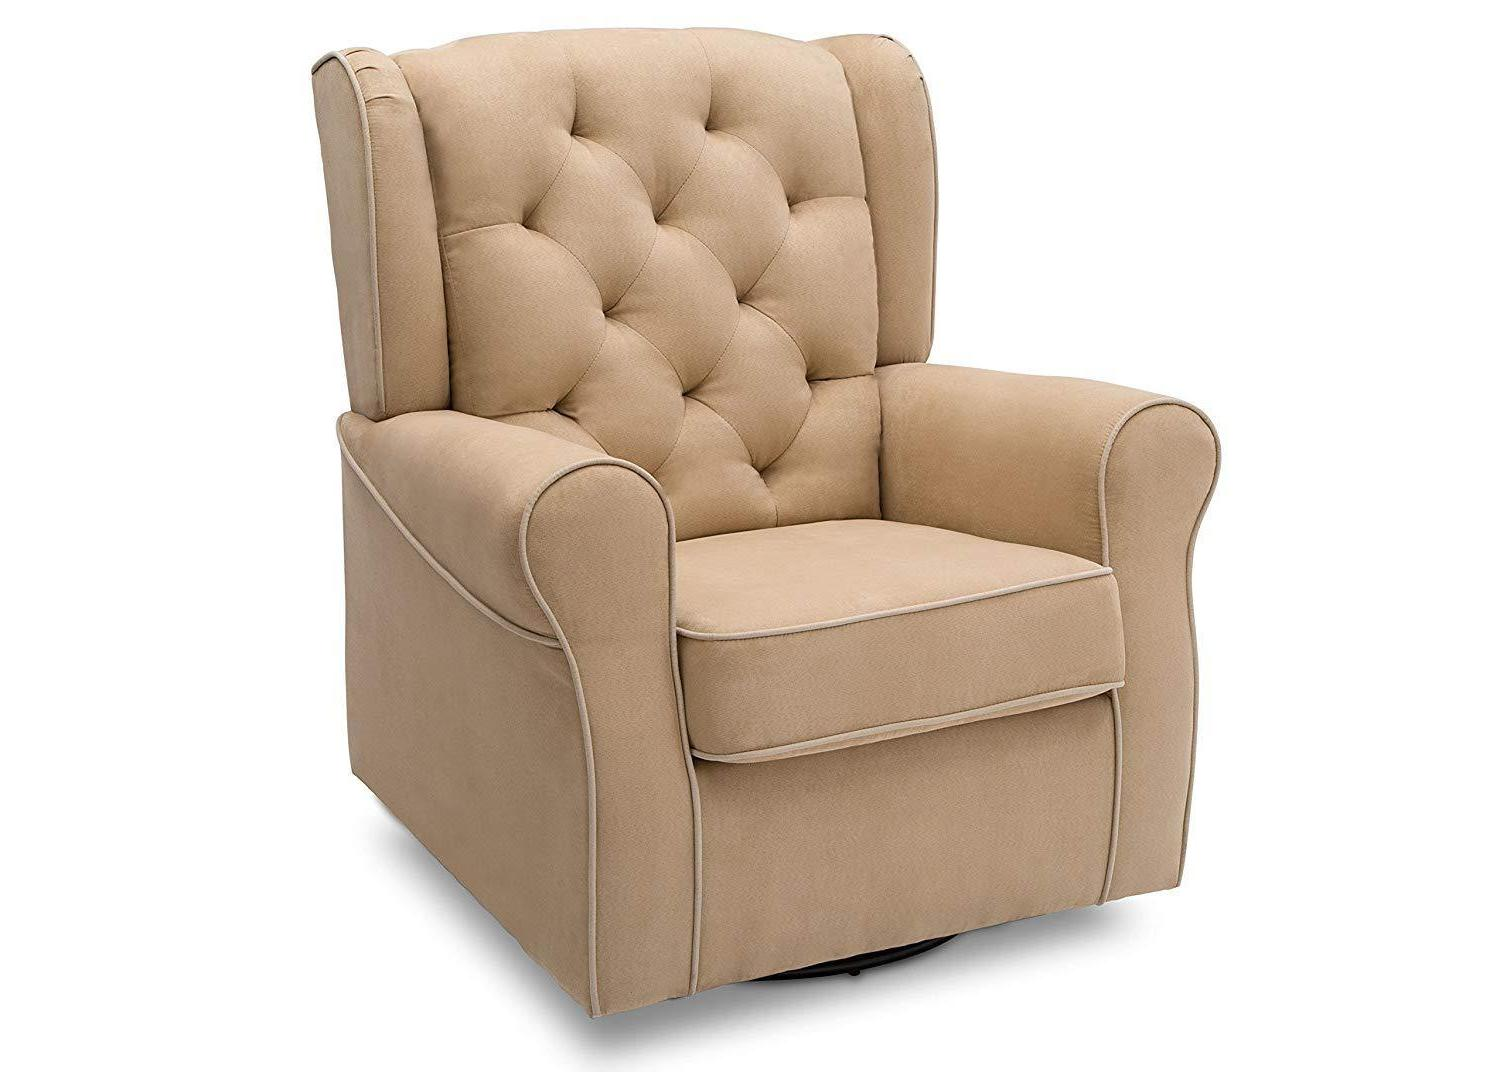 emerson upholstered glider swivel rocker chair dove